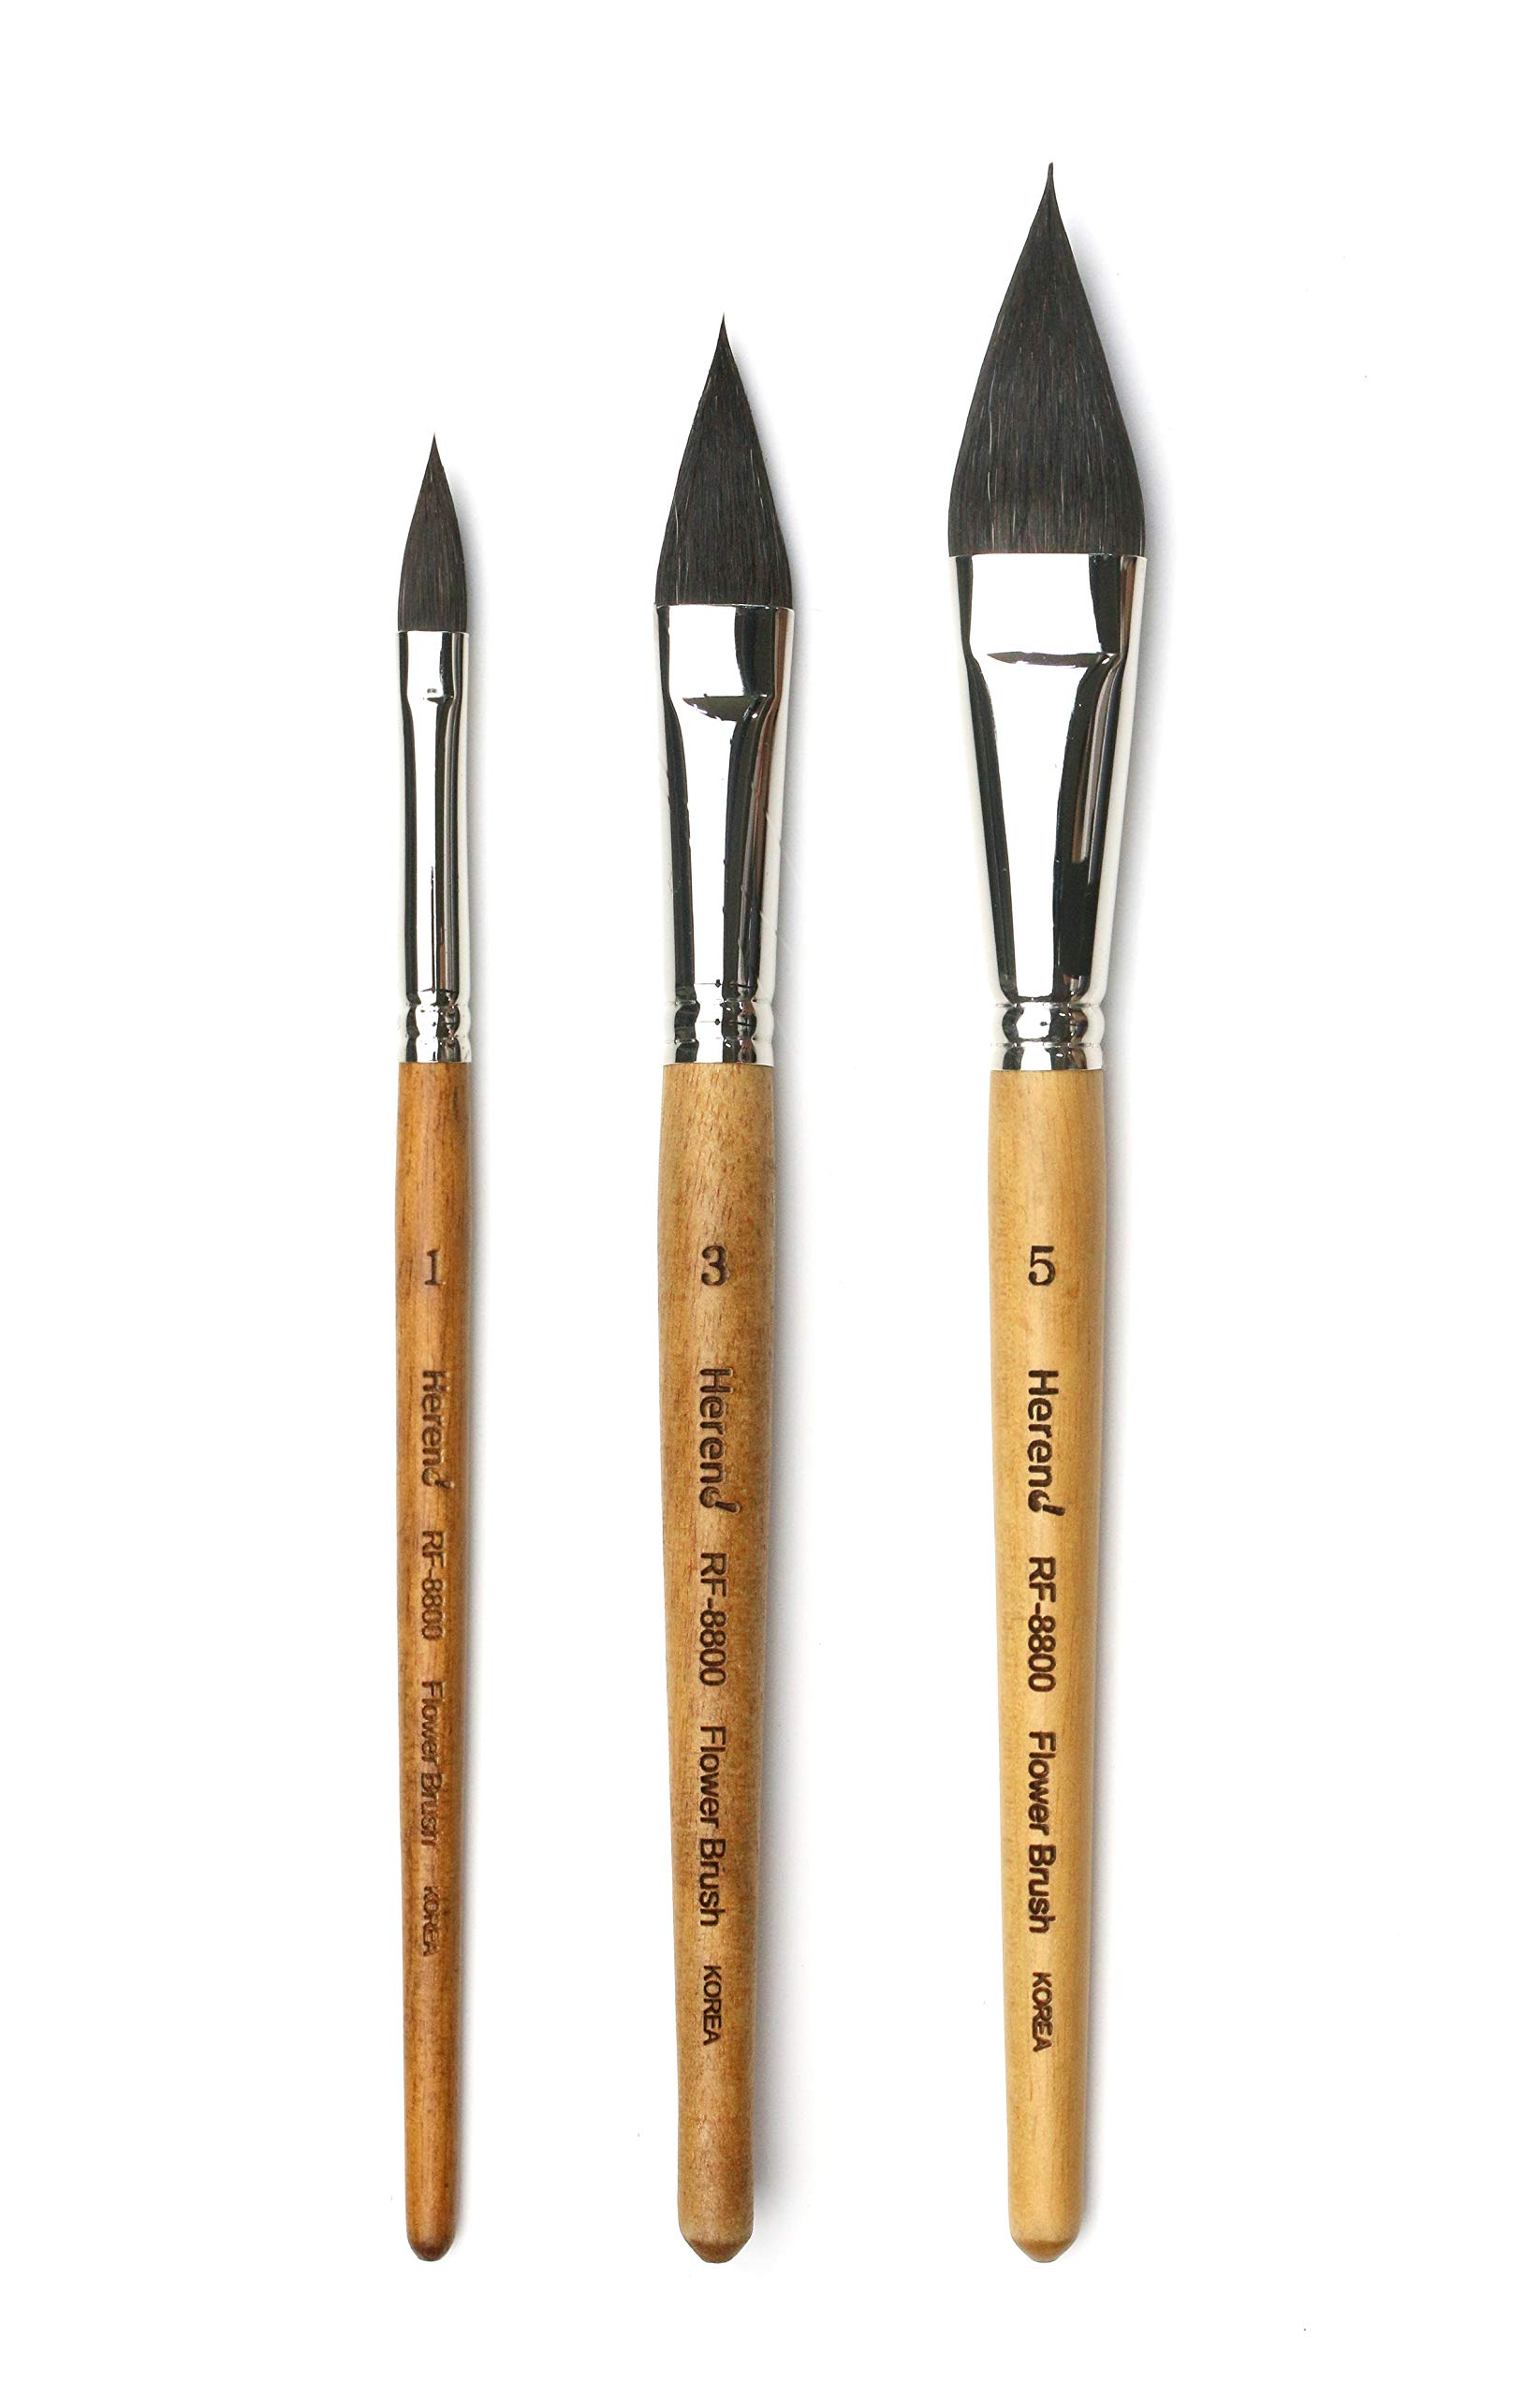 Herend Brush Series RF-8800 (No.1 ~ No.5) for Watercolor with Squirrel Hair/Filbert Ponited Paintbrush (No.14) (Set (1,3,5)) by Herend Brush